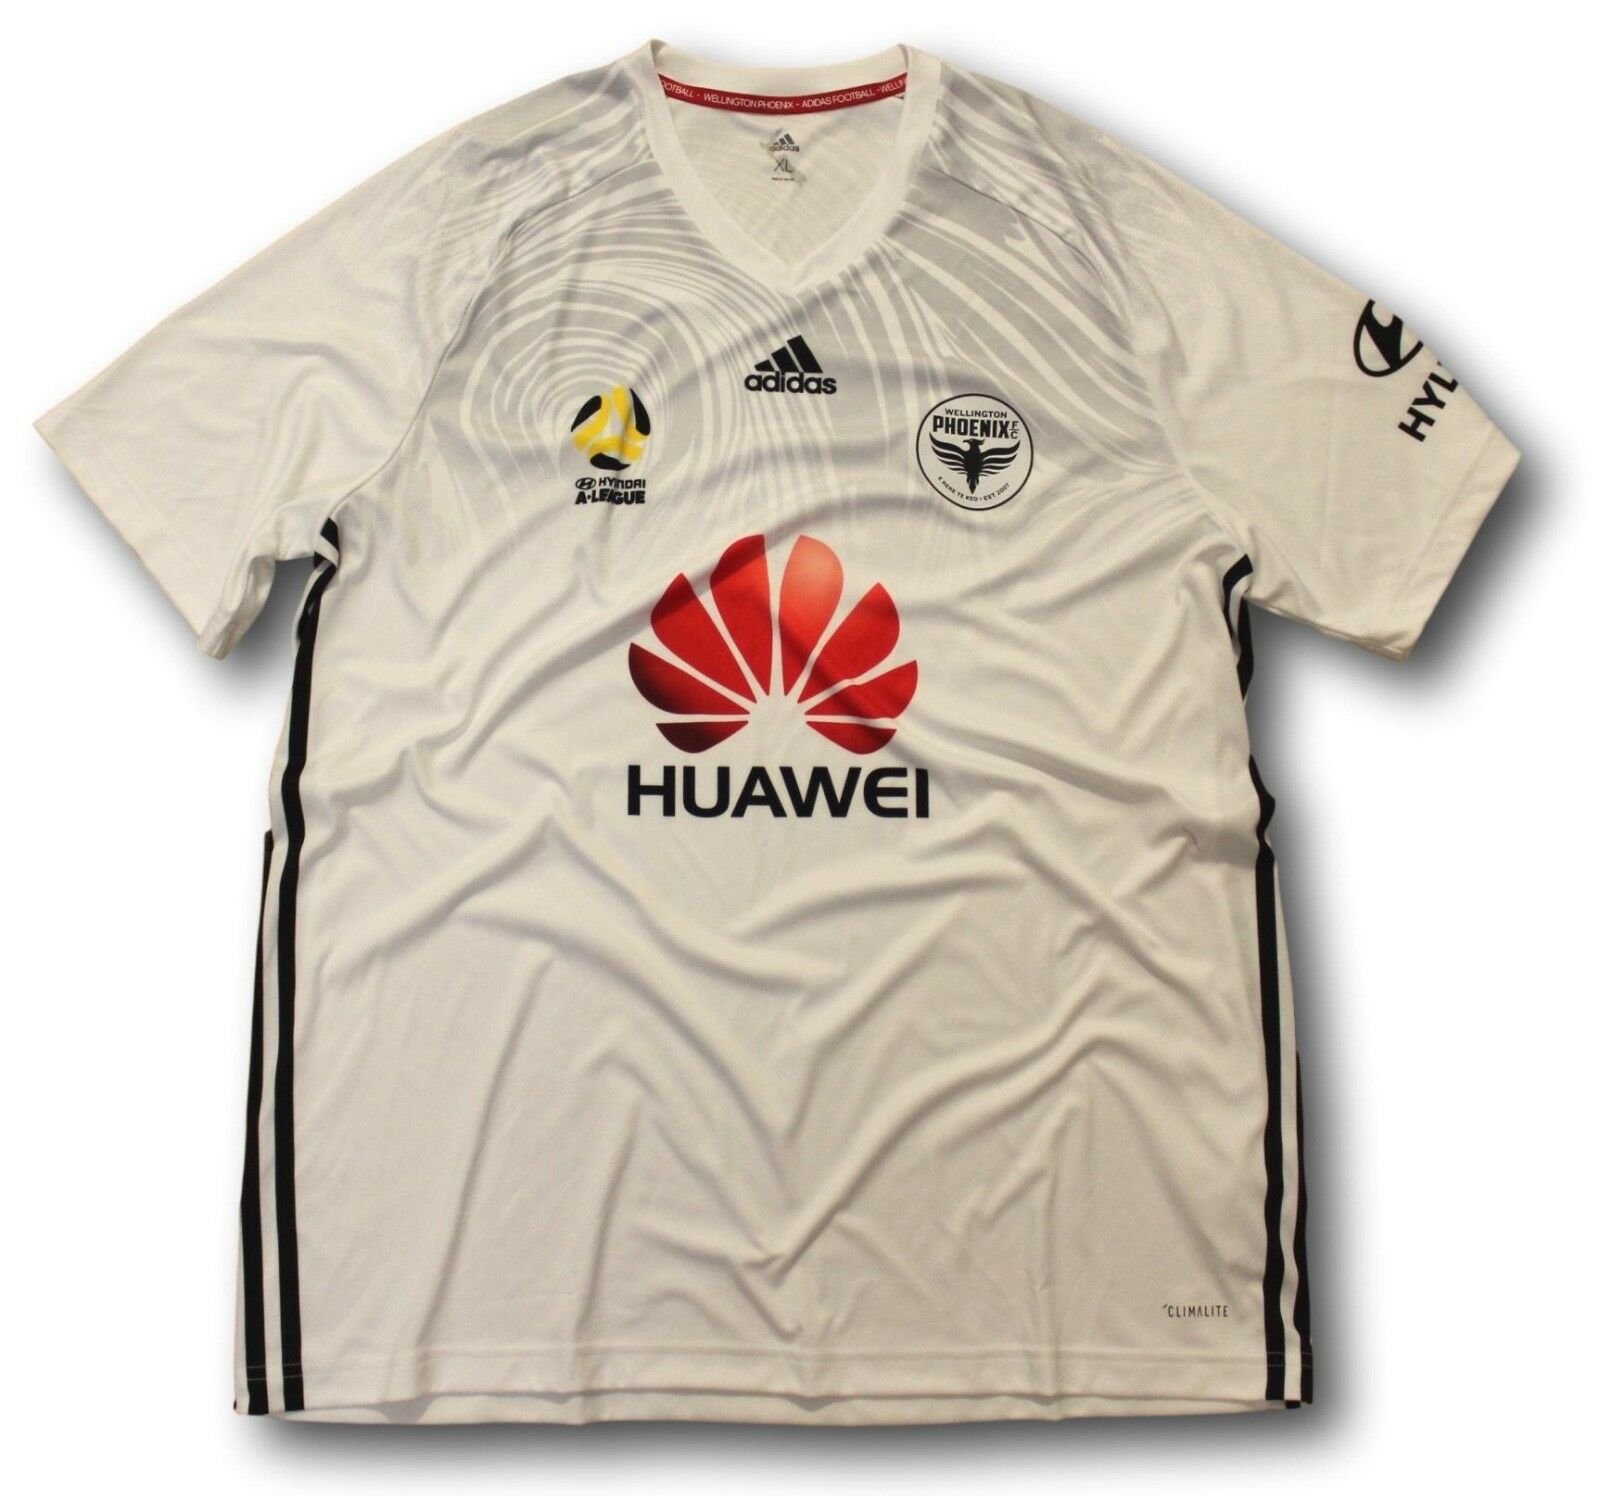 7a593da92 2017-18 Mens A-League Wellington Phoenix Away Soccer Football Shirt Jersey  XL